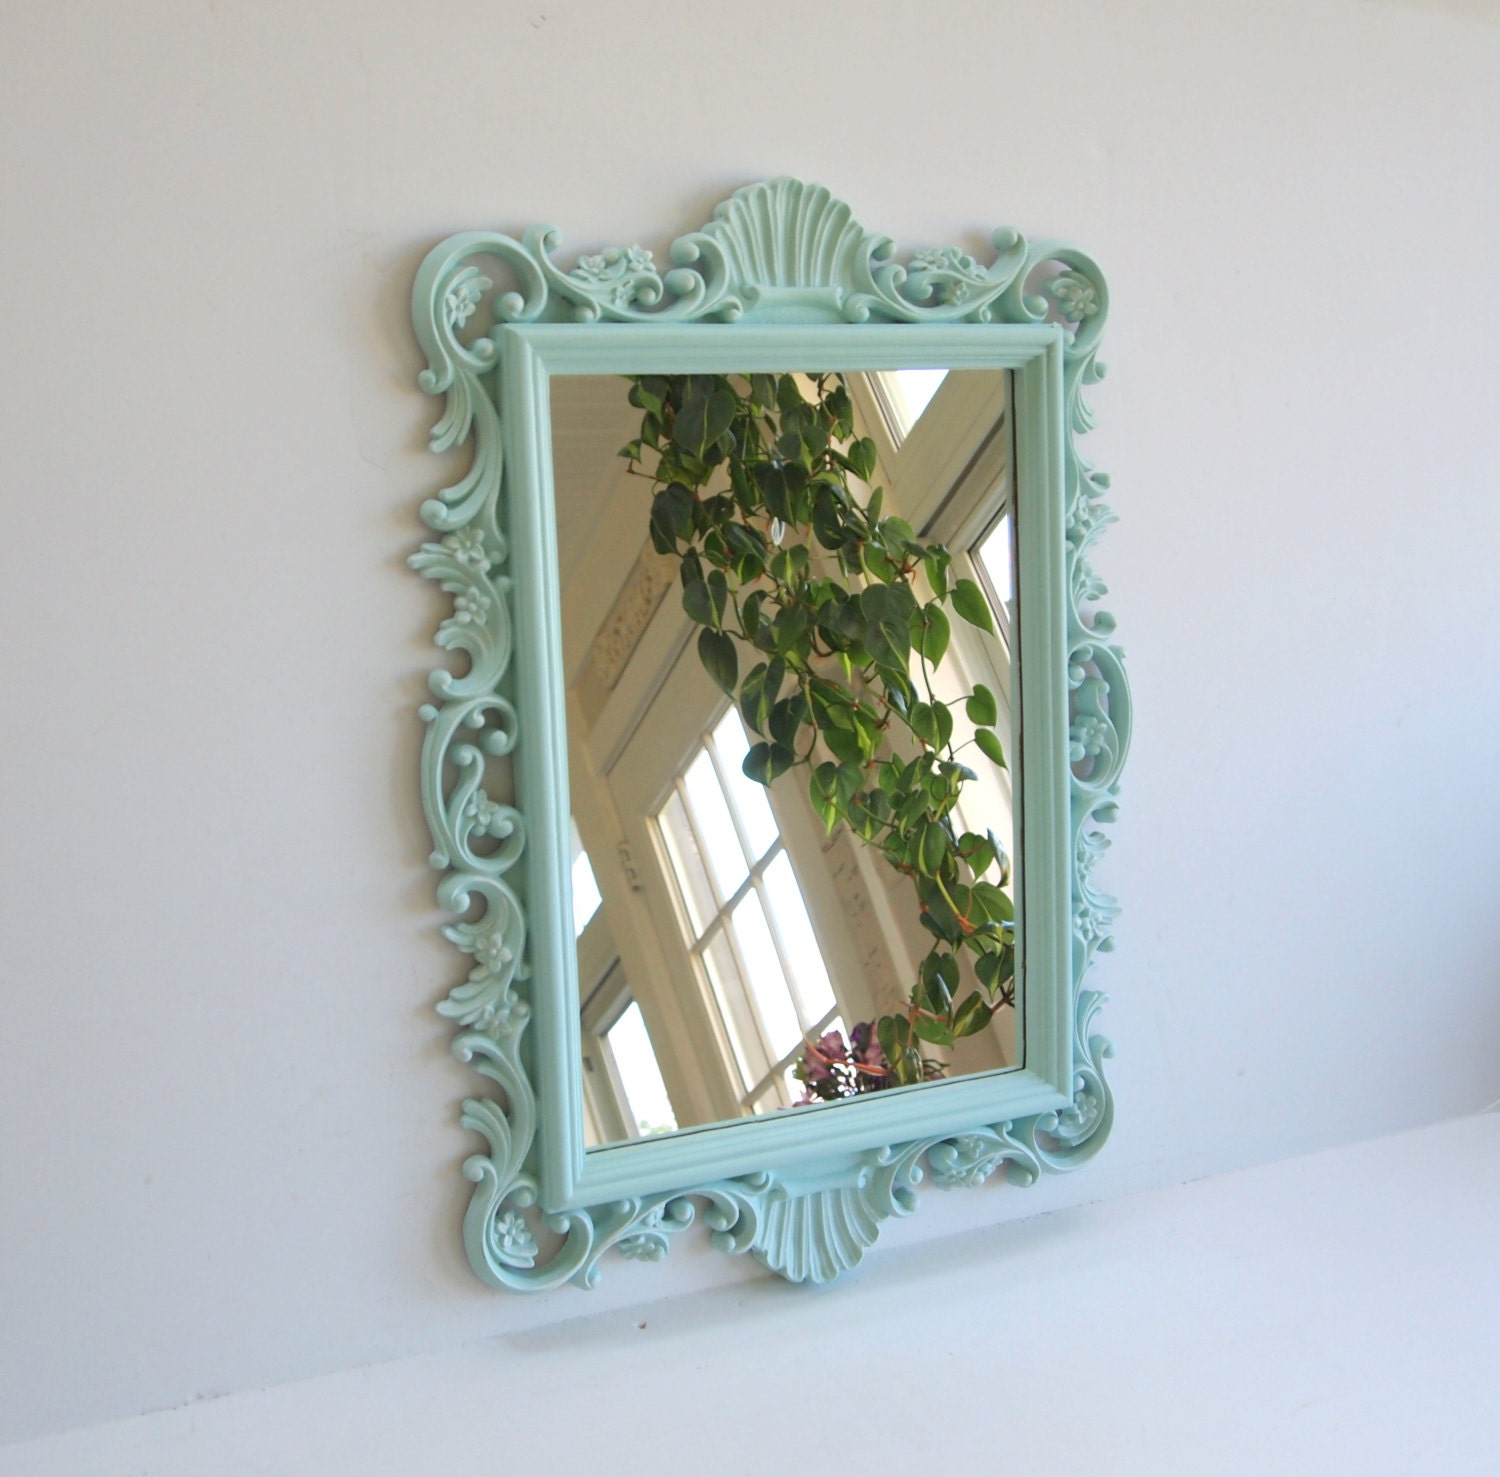 wall mirror vintage ornate shabby chic seafoam by. Black Bedroom Furniture Sets. Home Design Ideas